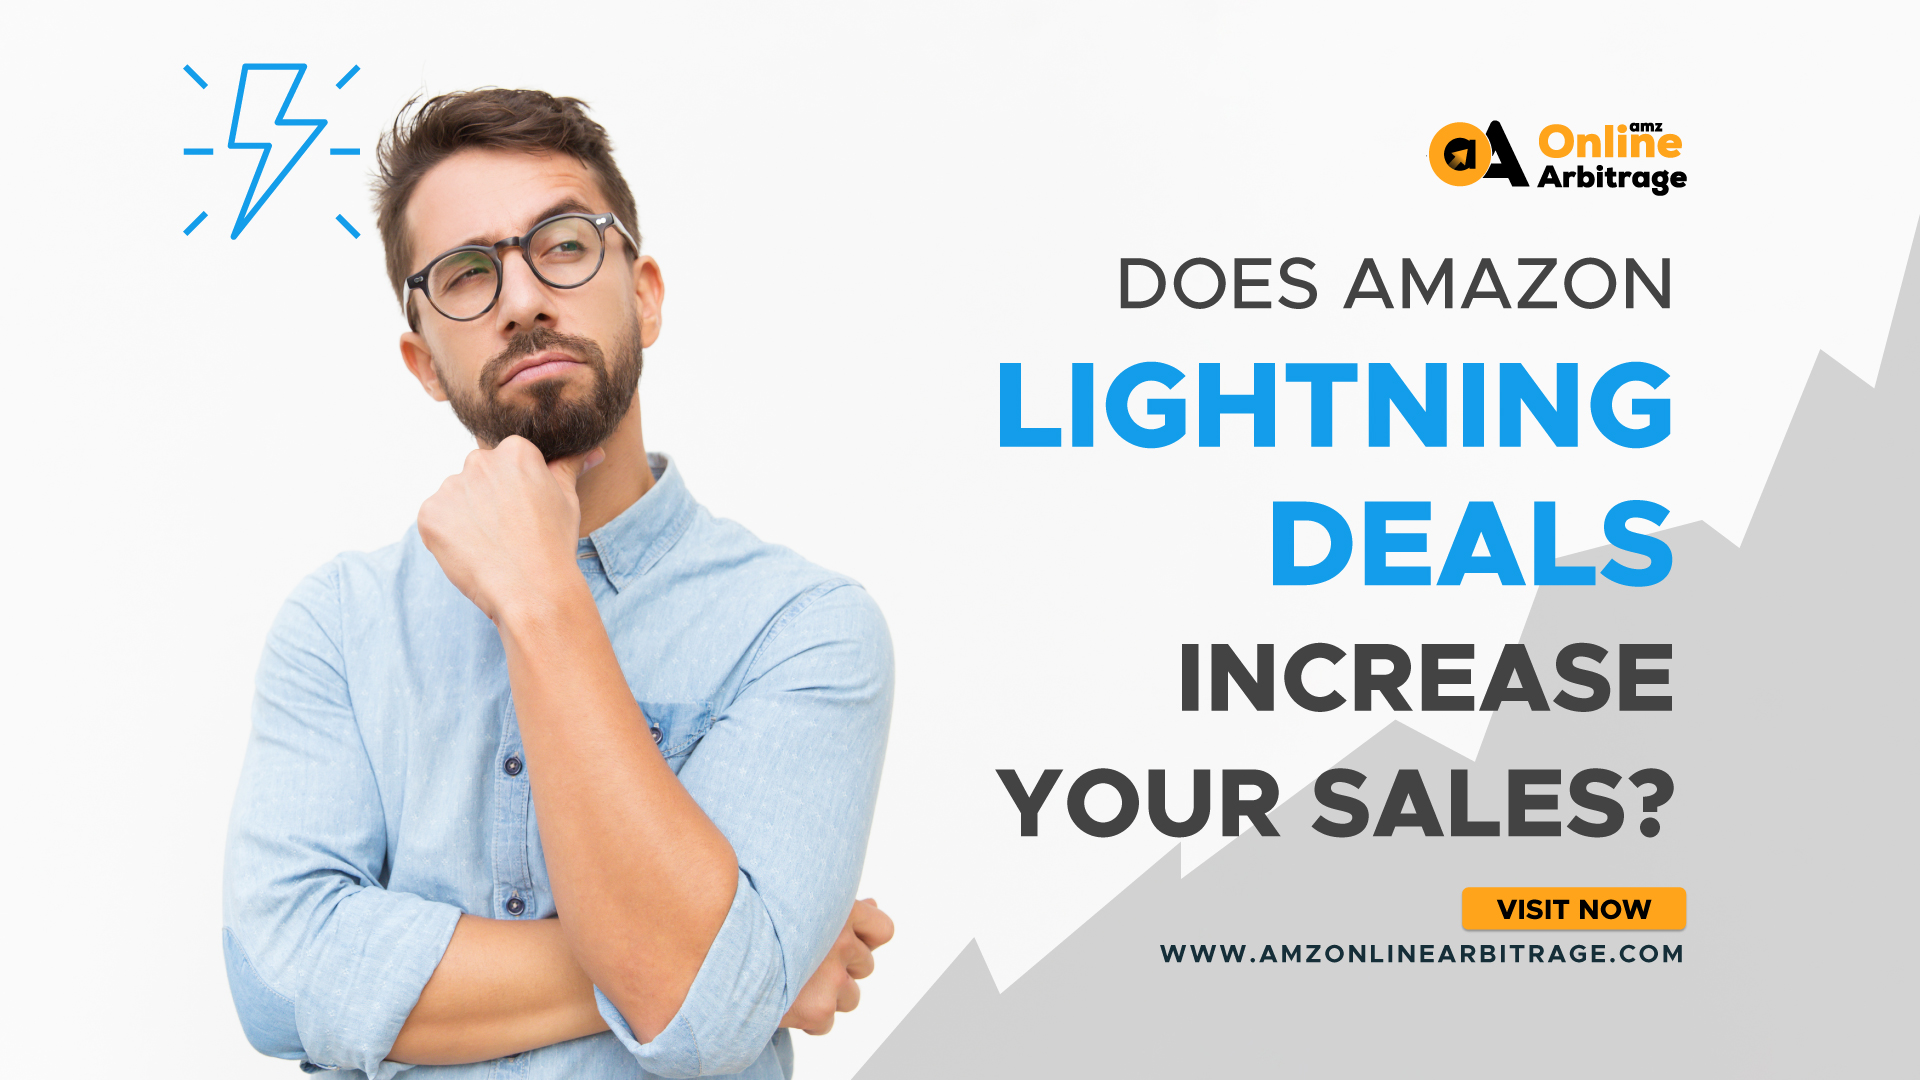 DOES AMAZON LIGHTNING DEALS INCREASE YOUR SALES?